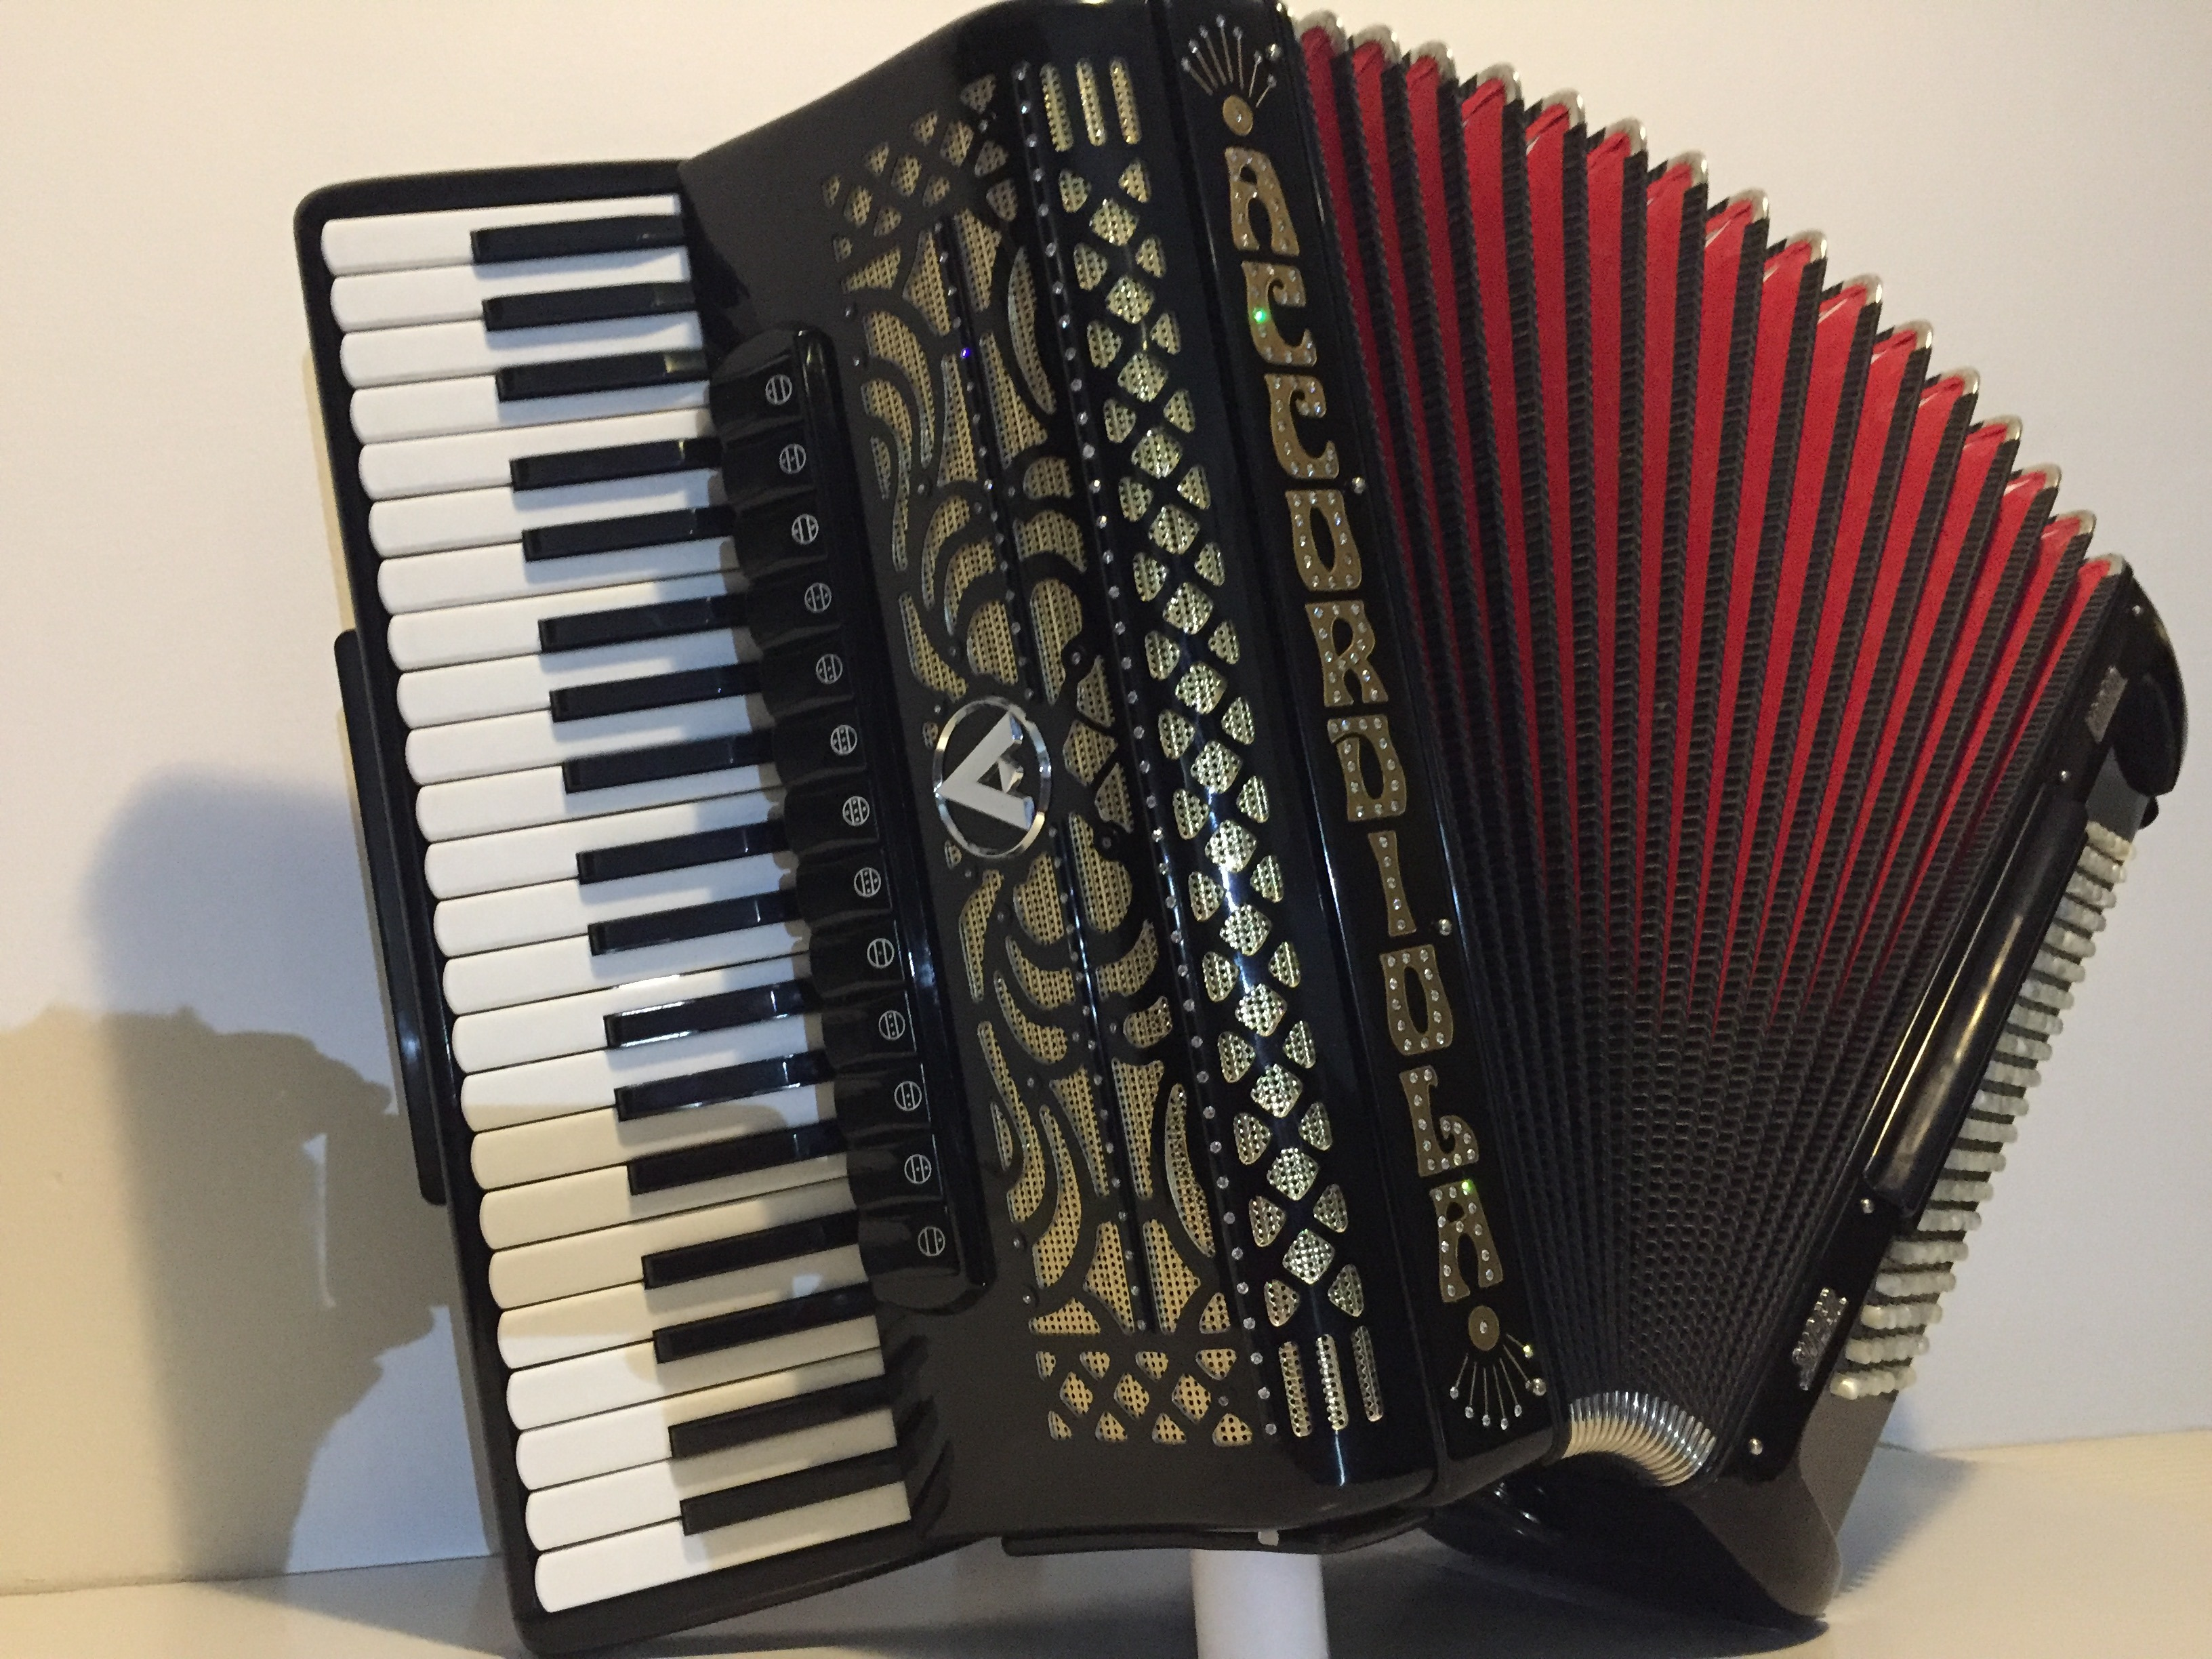 Akordeon Accordiola MANON 120 bas